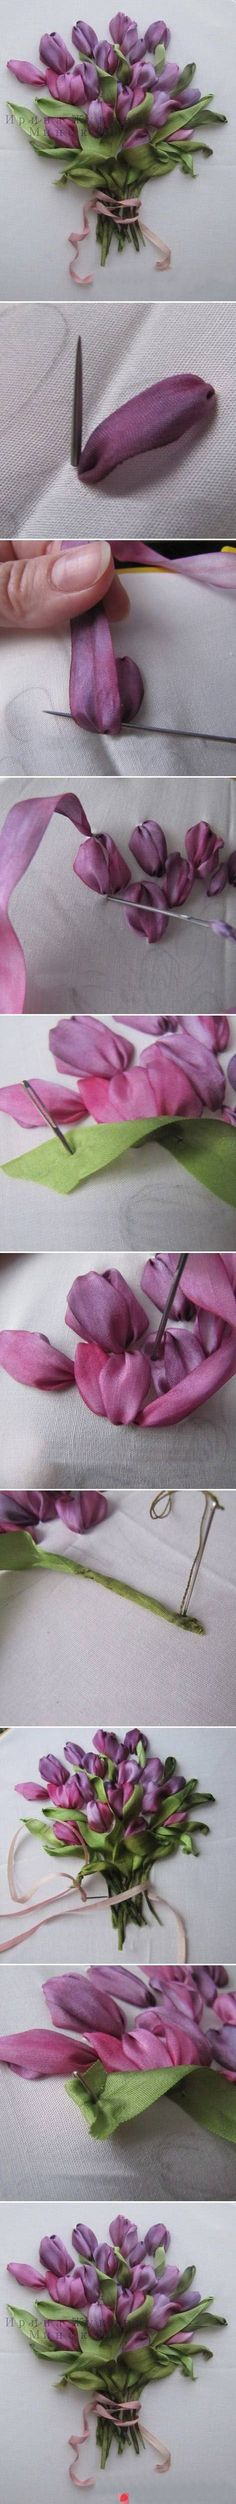 Silk ribbon embroidery tulips demonstrated